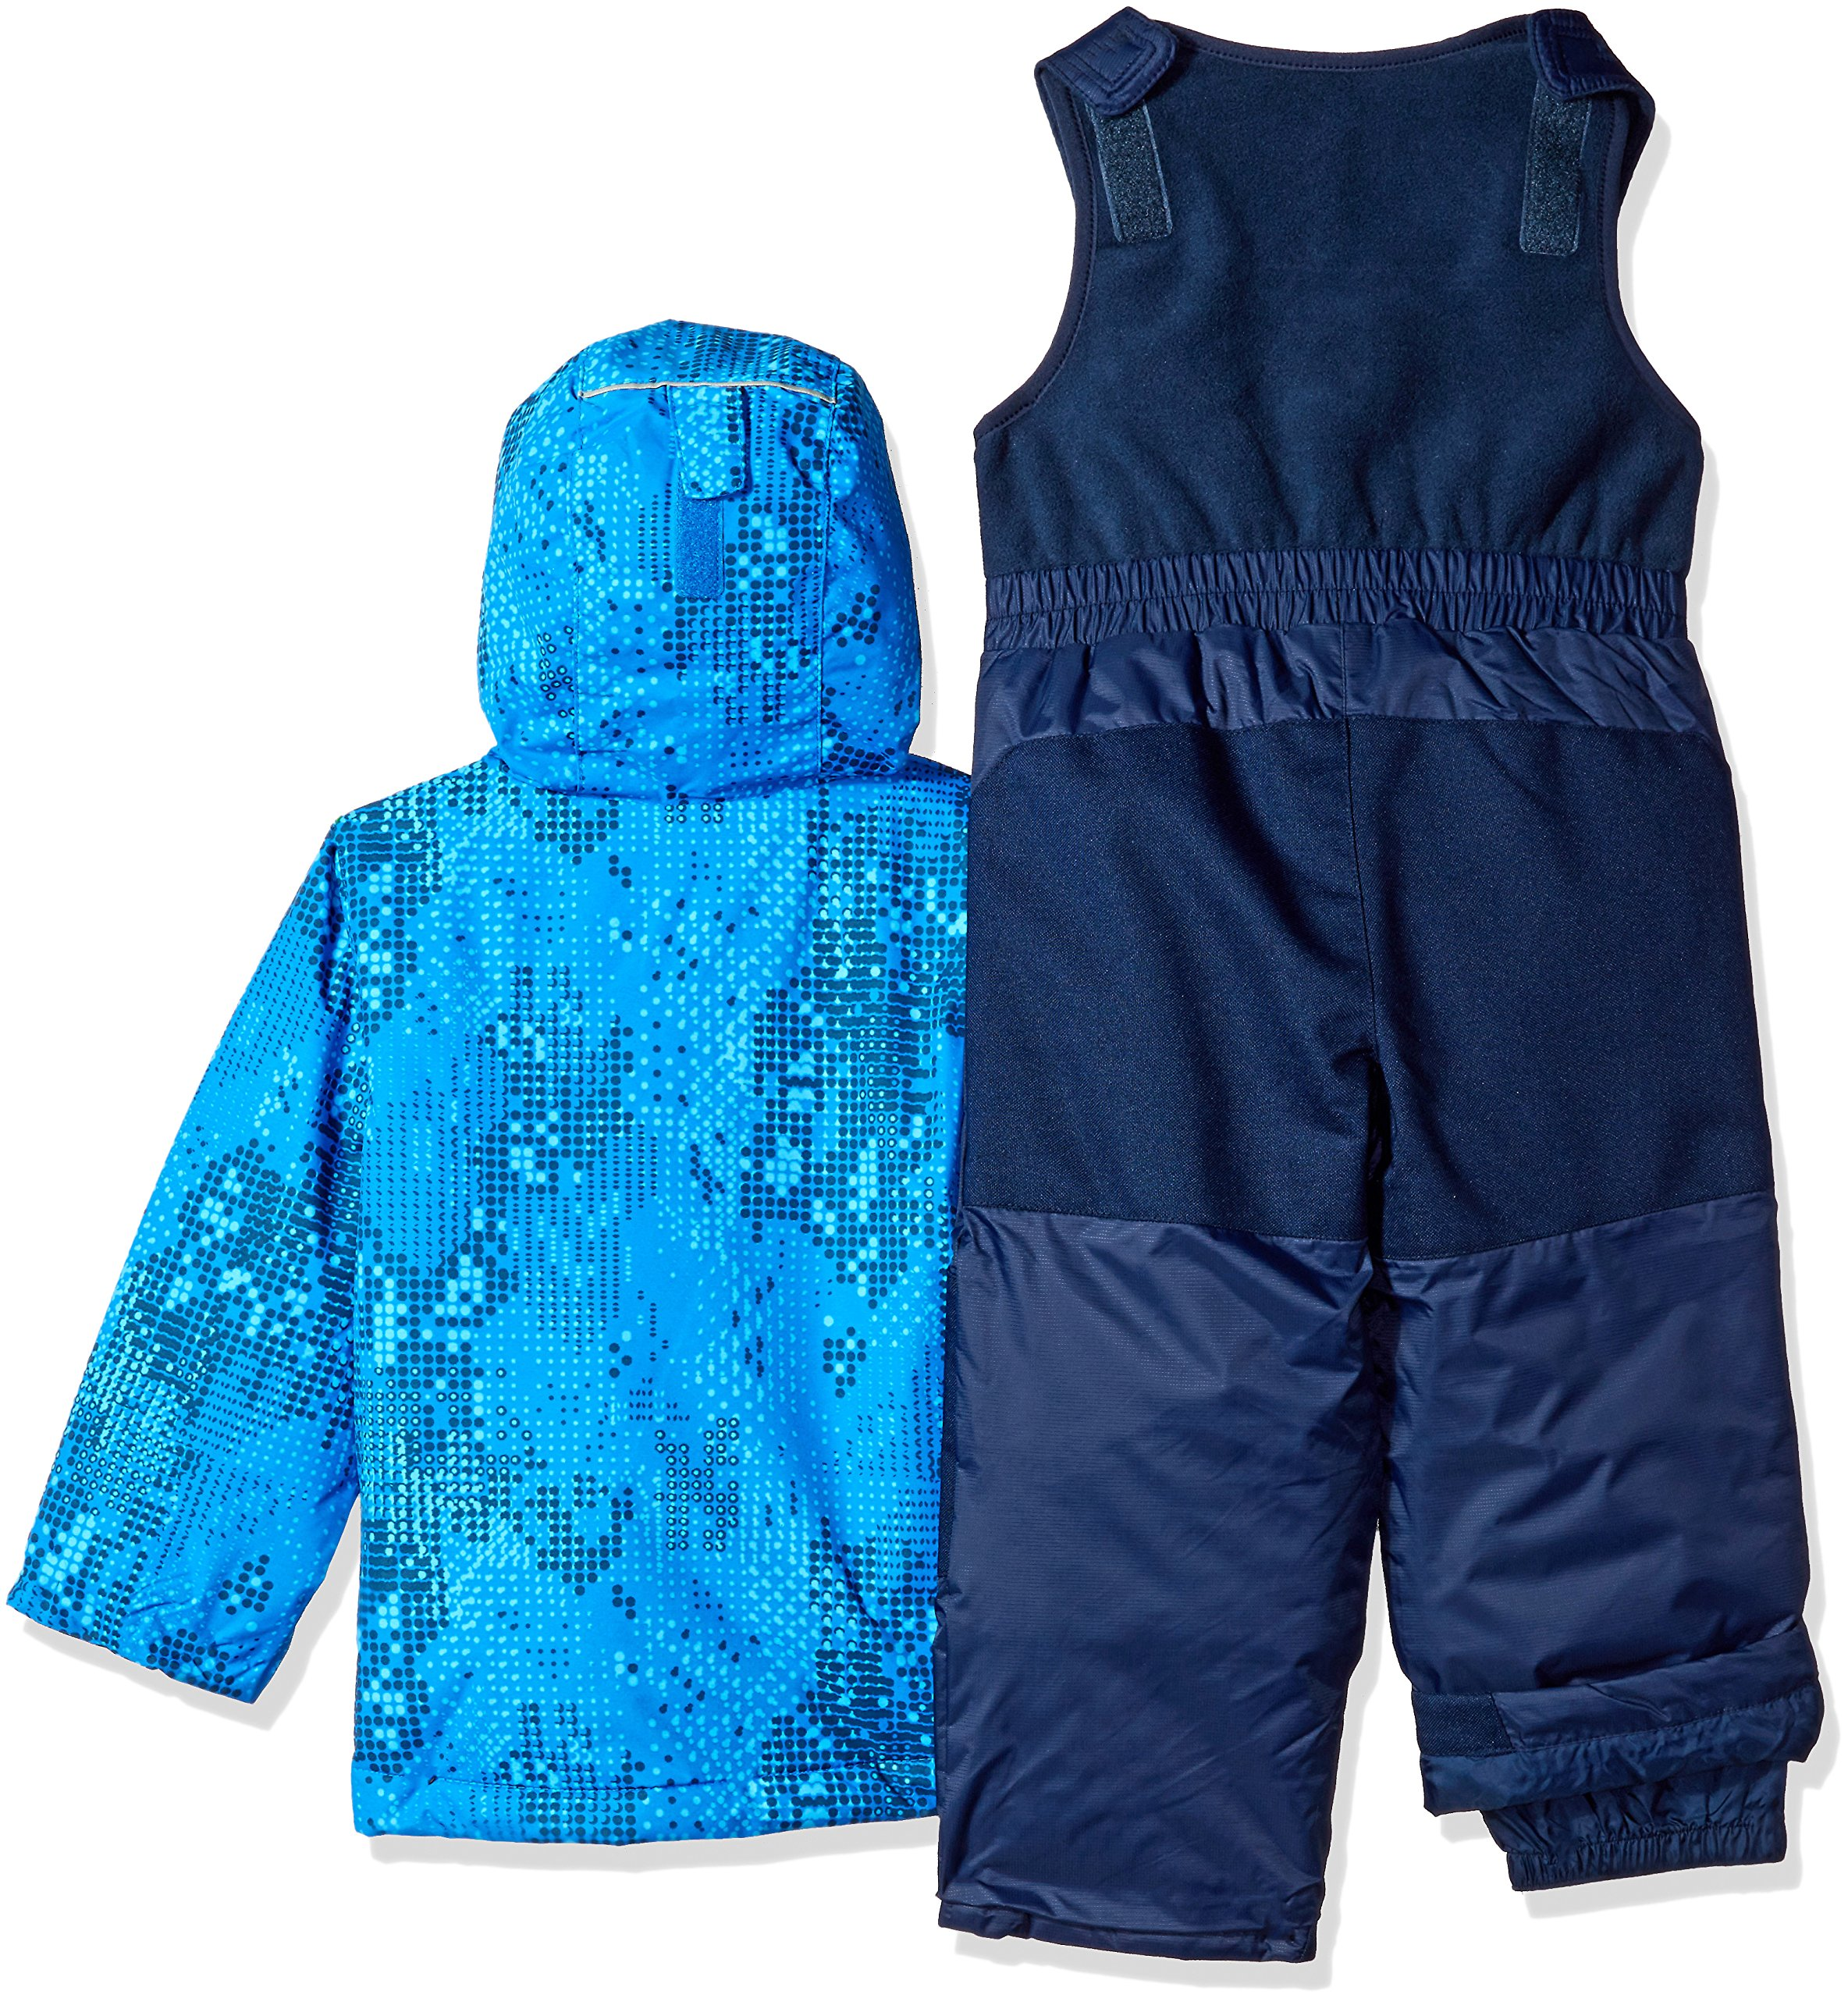 Columbia Little Boys' Frosty Slope Set, Super Blue Energy Dot, 4T by Columbia (Image #2)